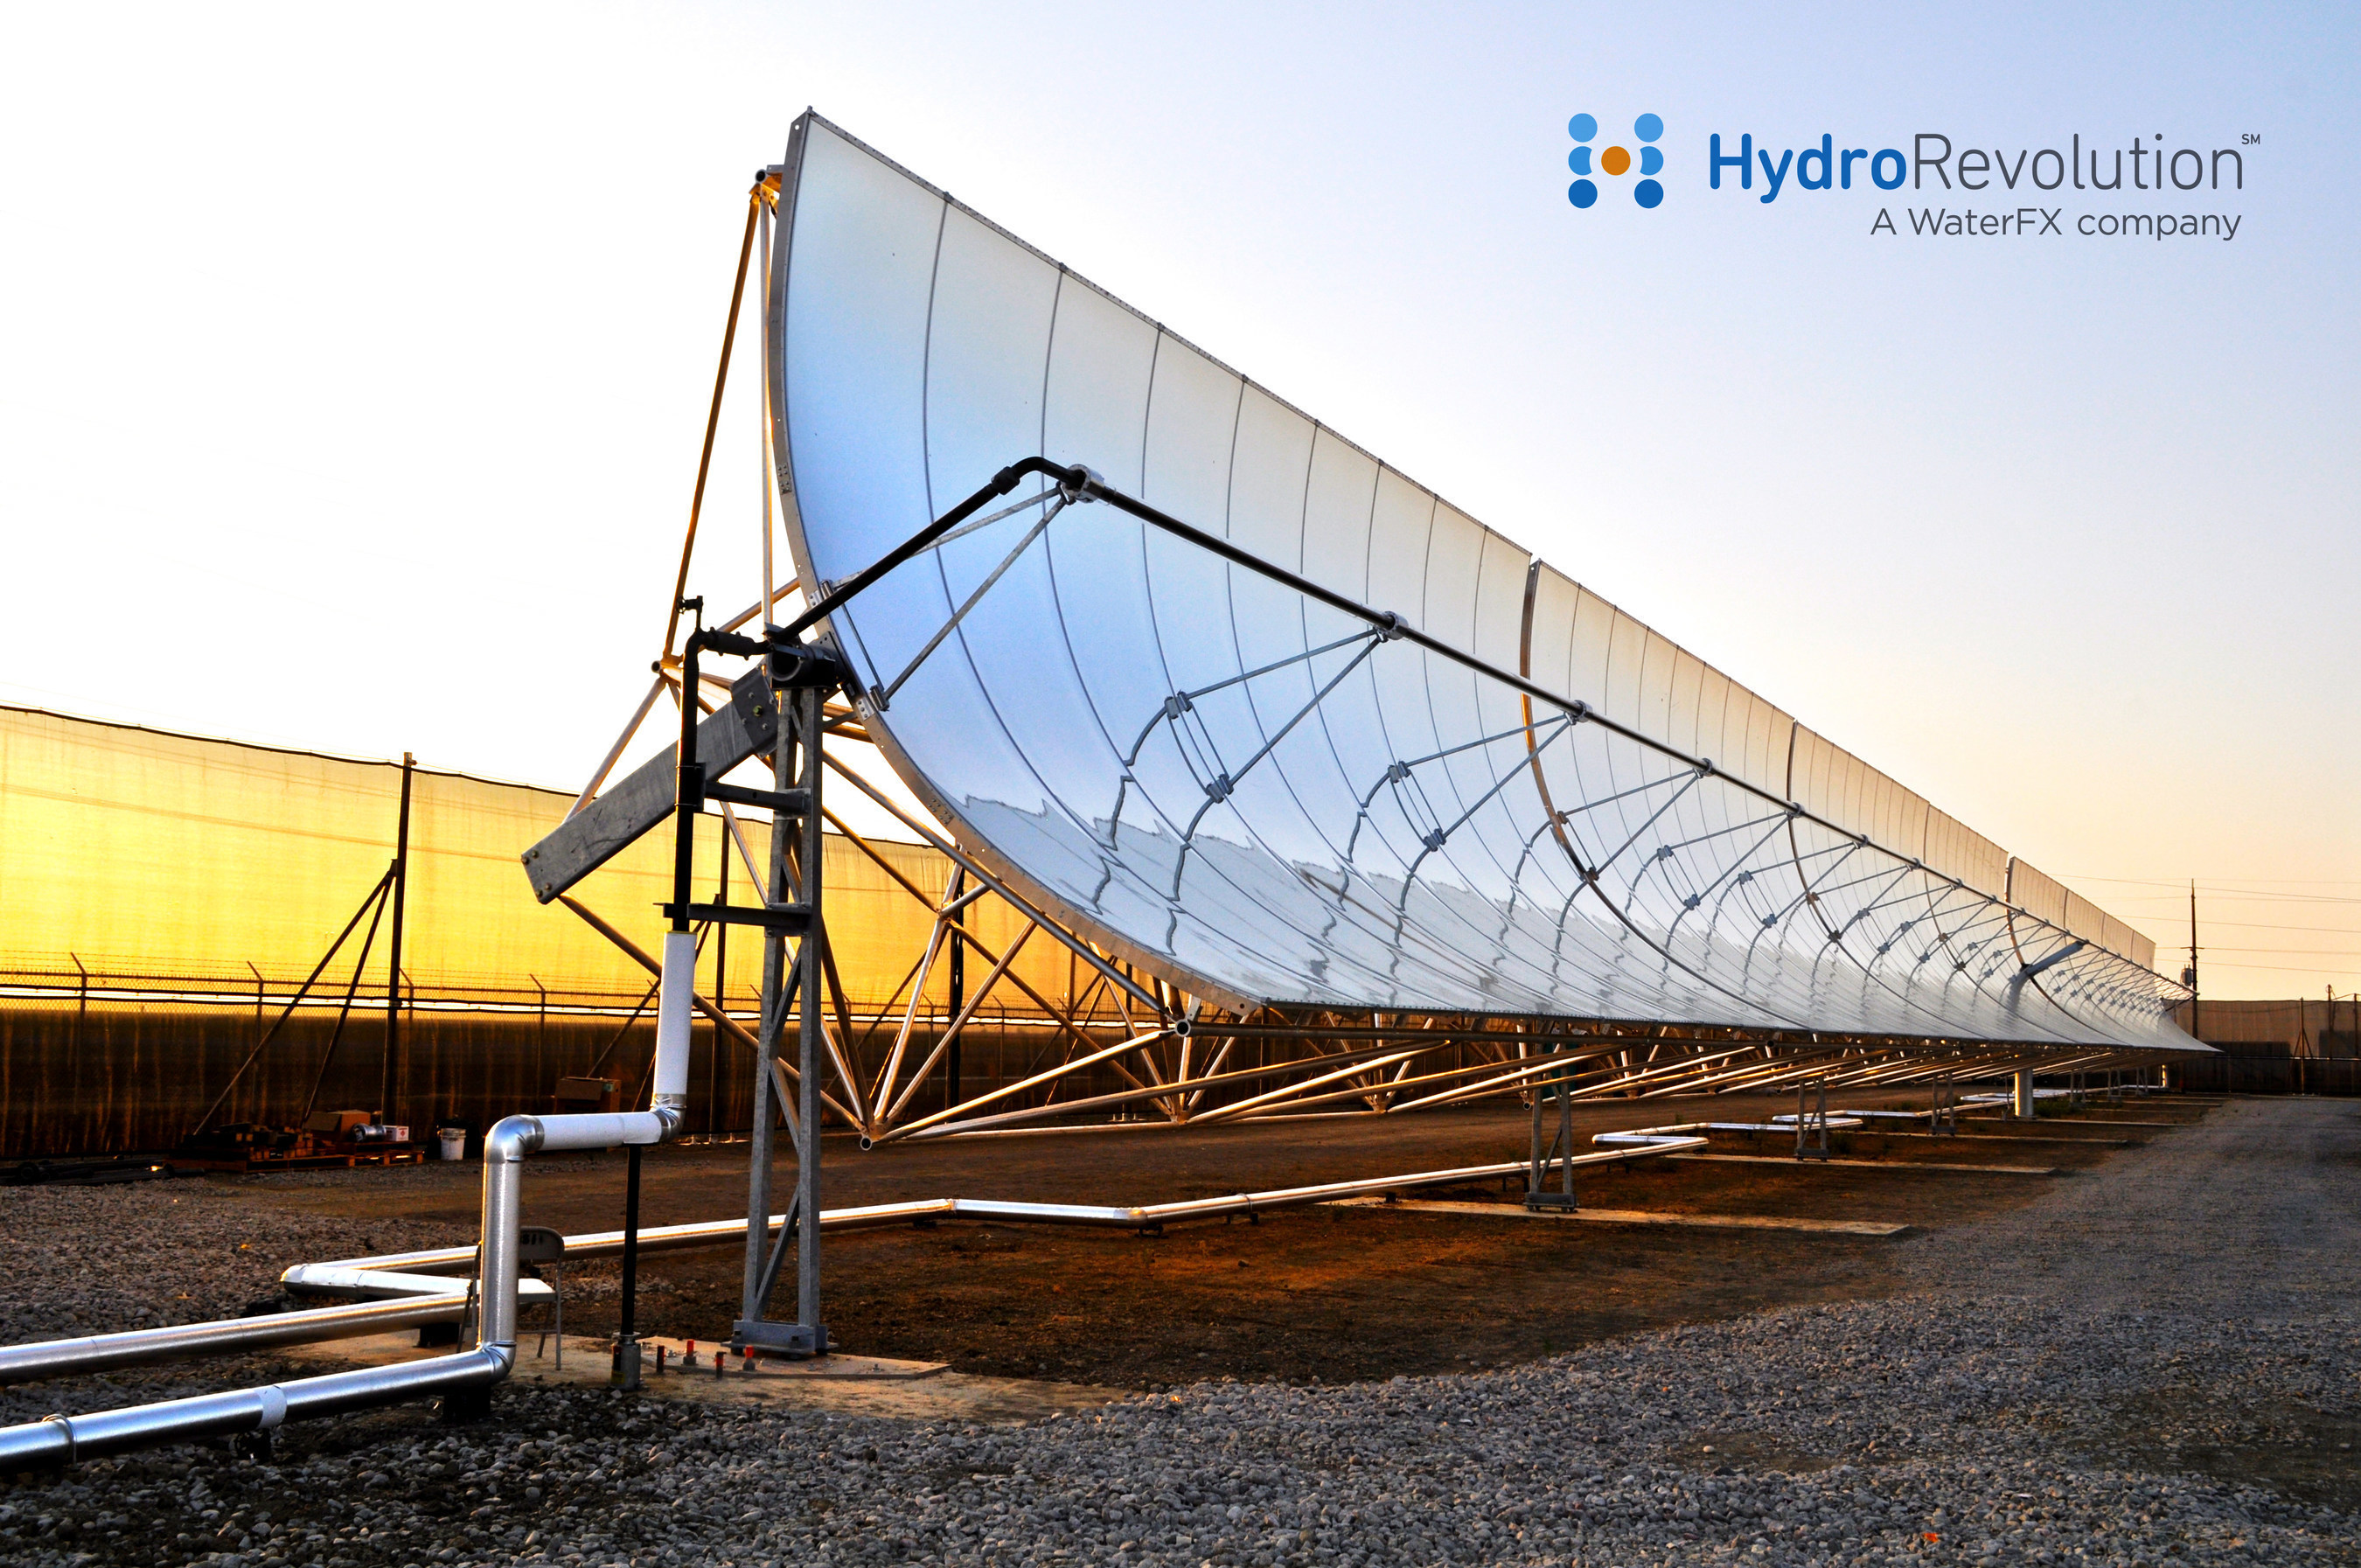 HydroRevolution Announces A Direct Public Offering To Construct California's First Solar Desalination Plant